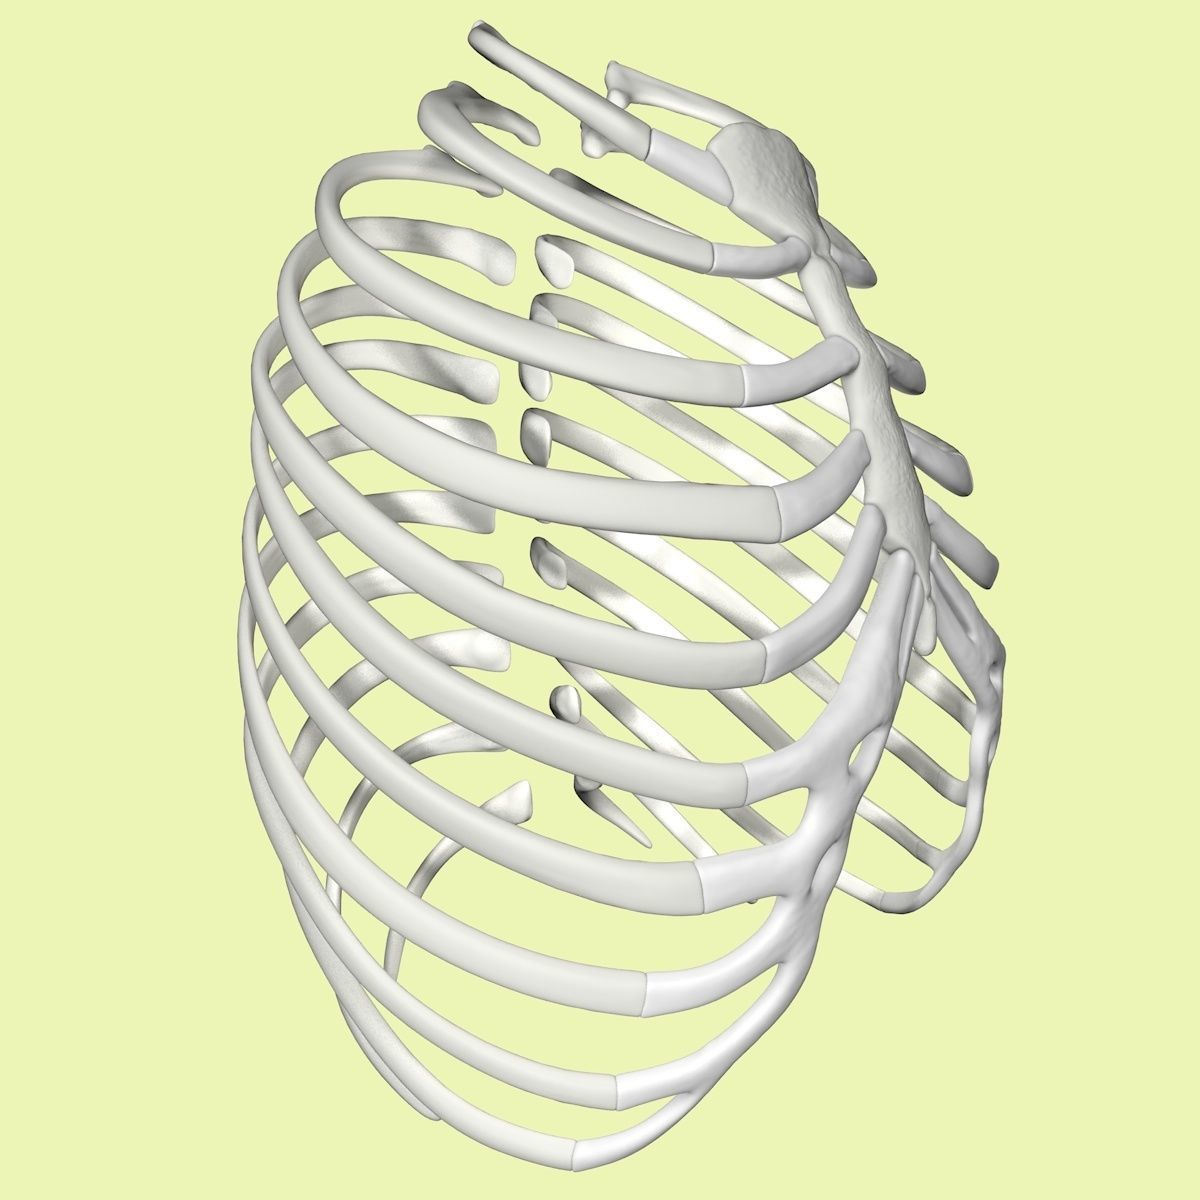 3D Rib cage model without texture